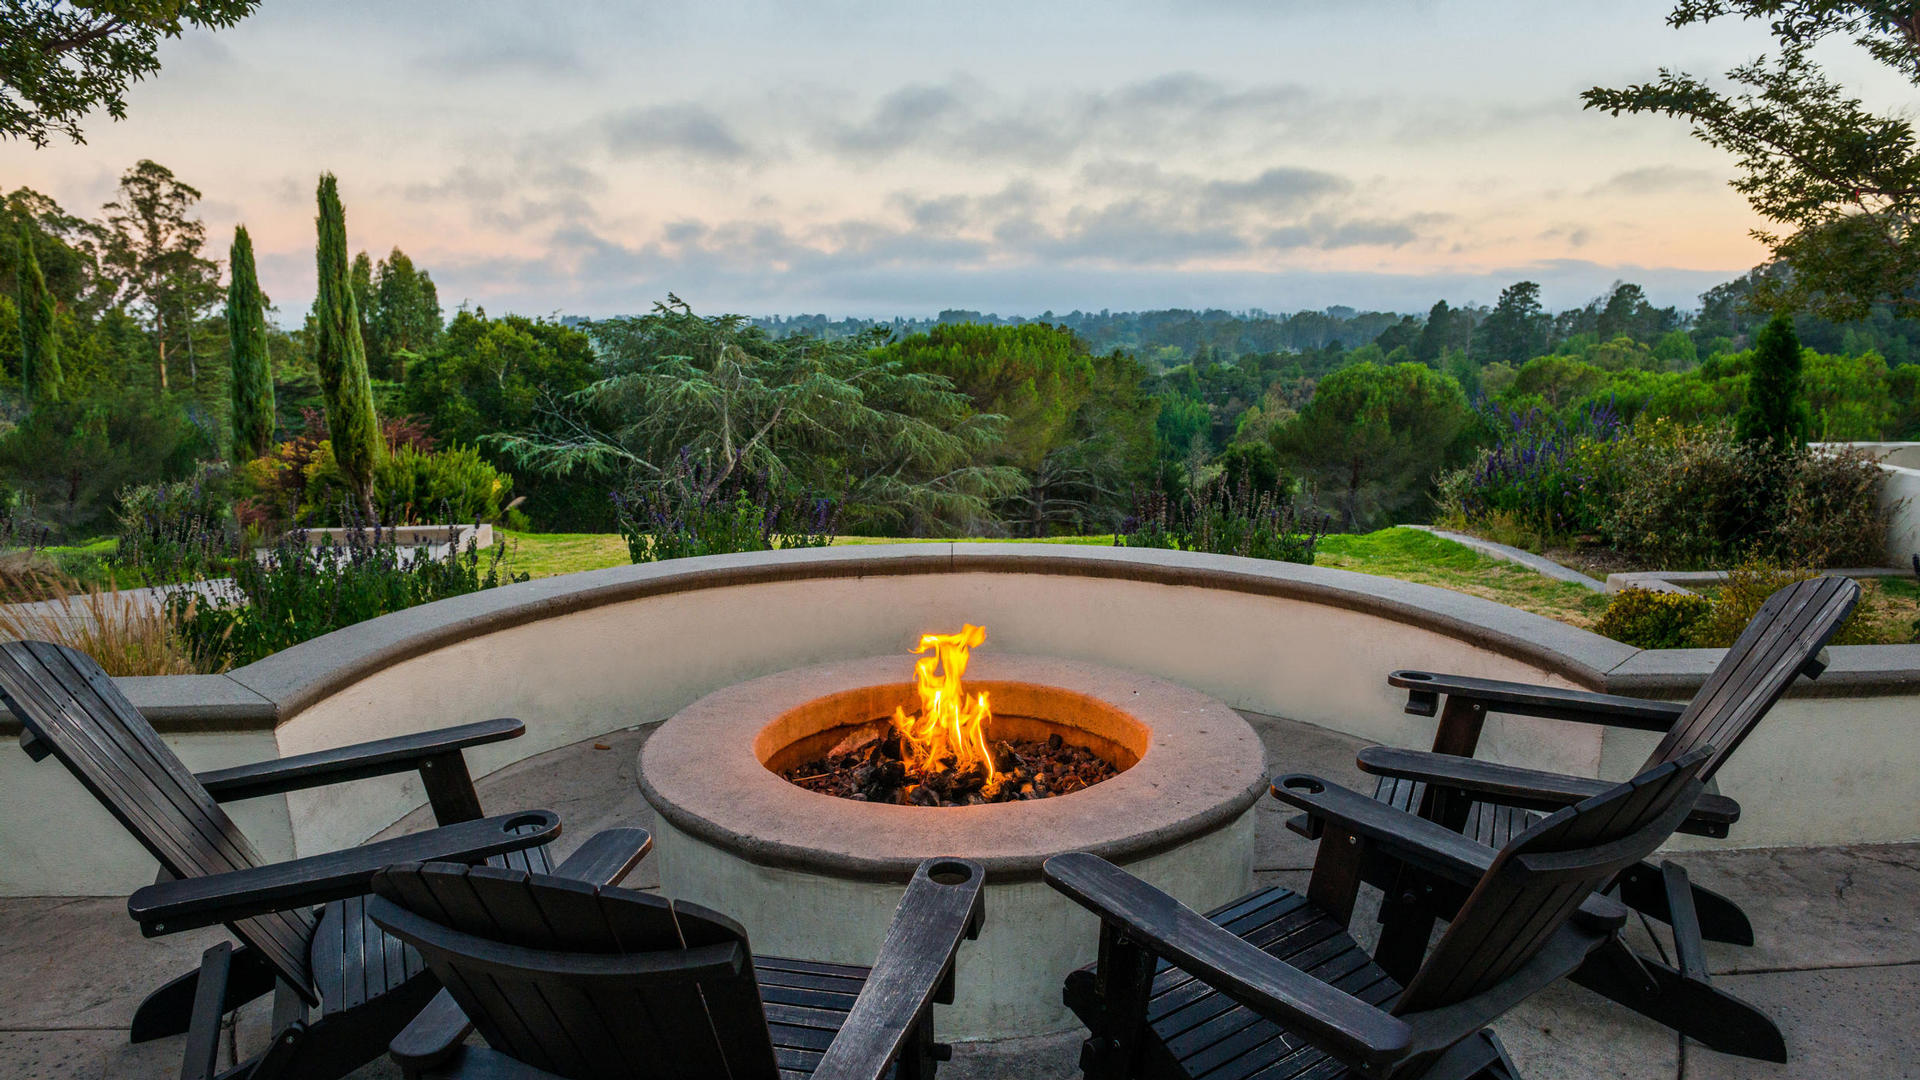 Outdoor Fire Pit at Chaminade Resort & Spa